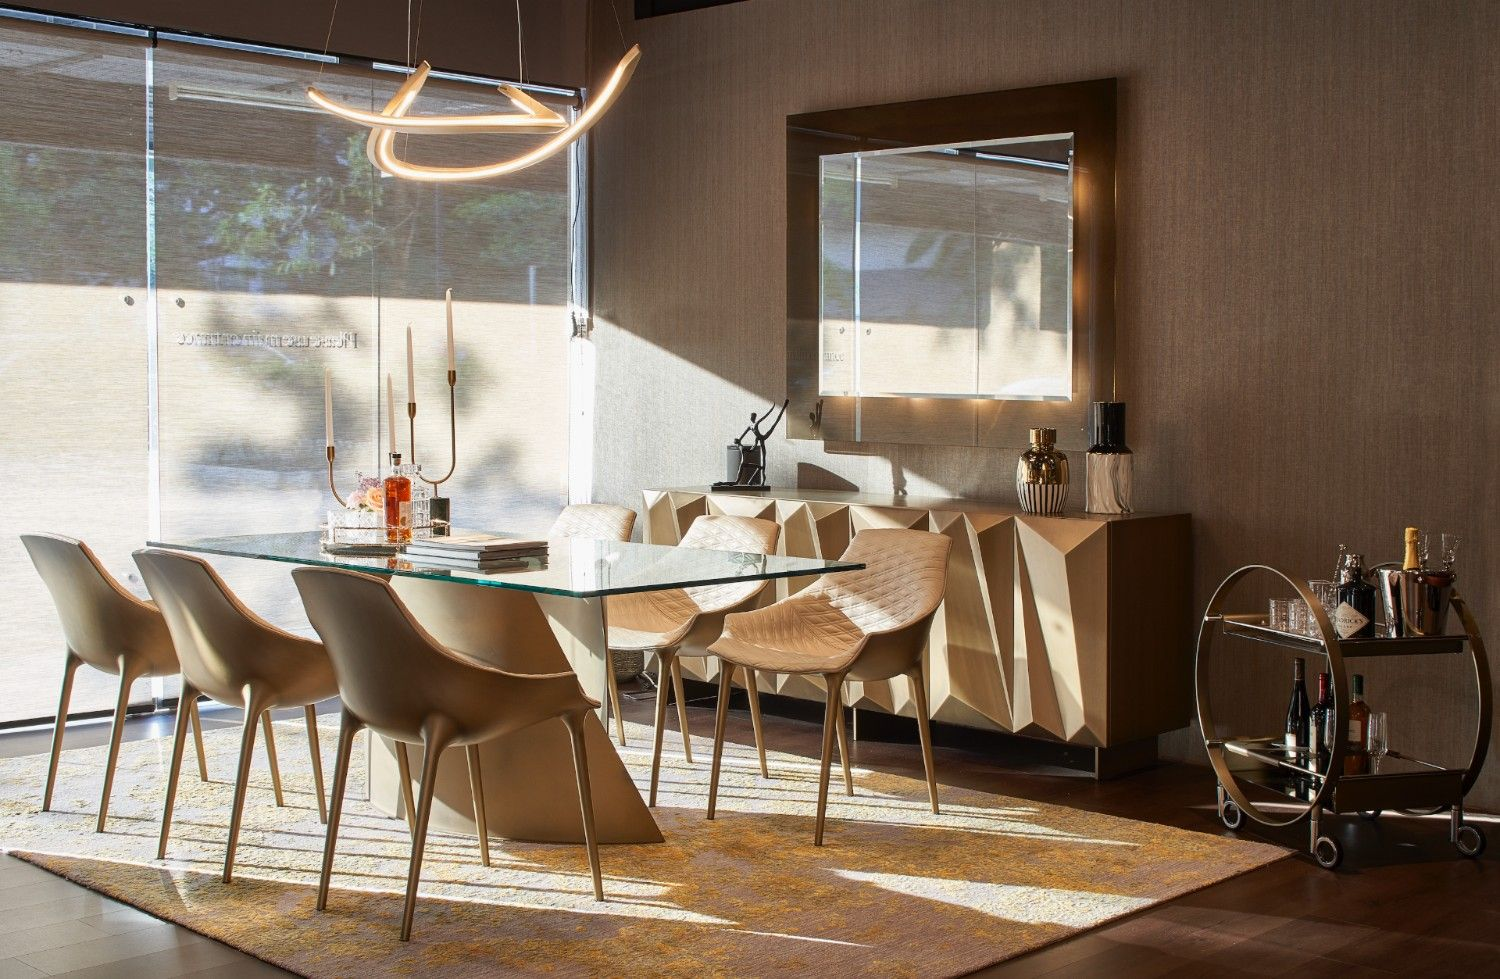 Sphere Living's New Furniture Showroom In Singapore Celebrates Its Italian Connections